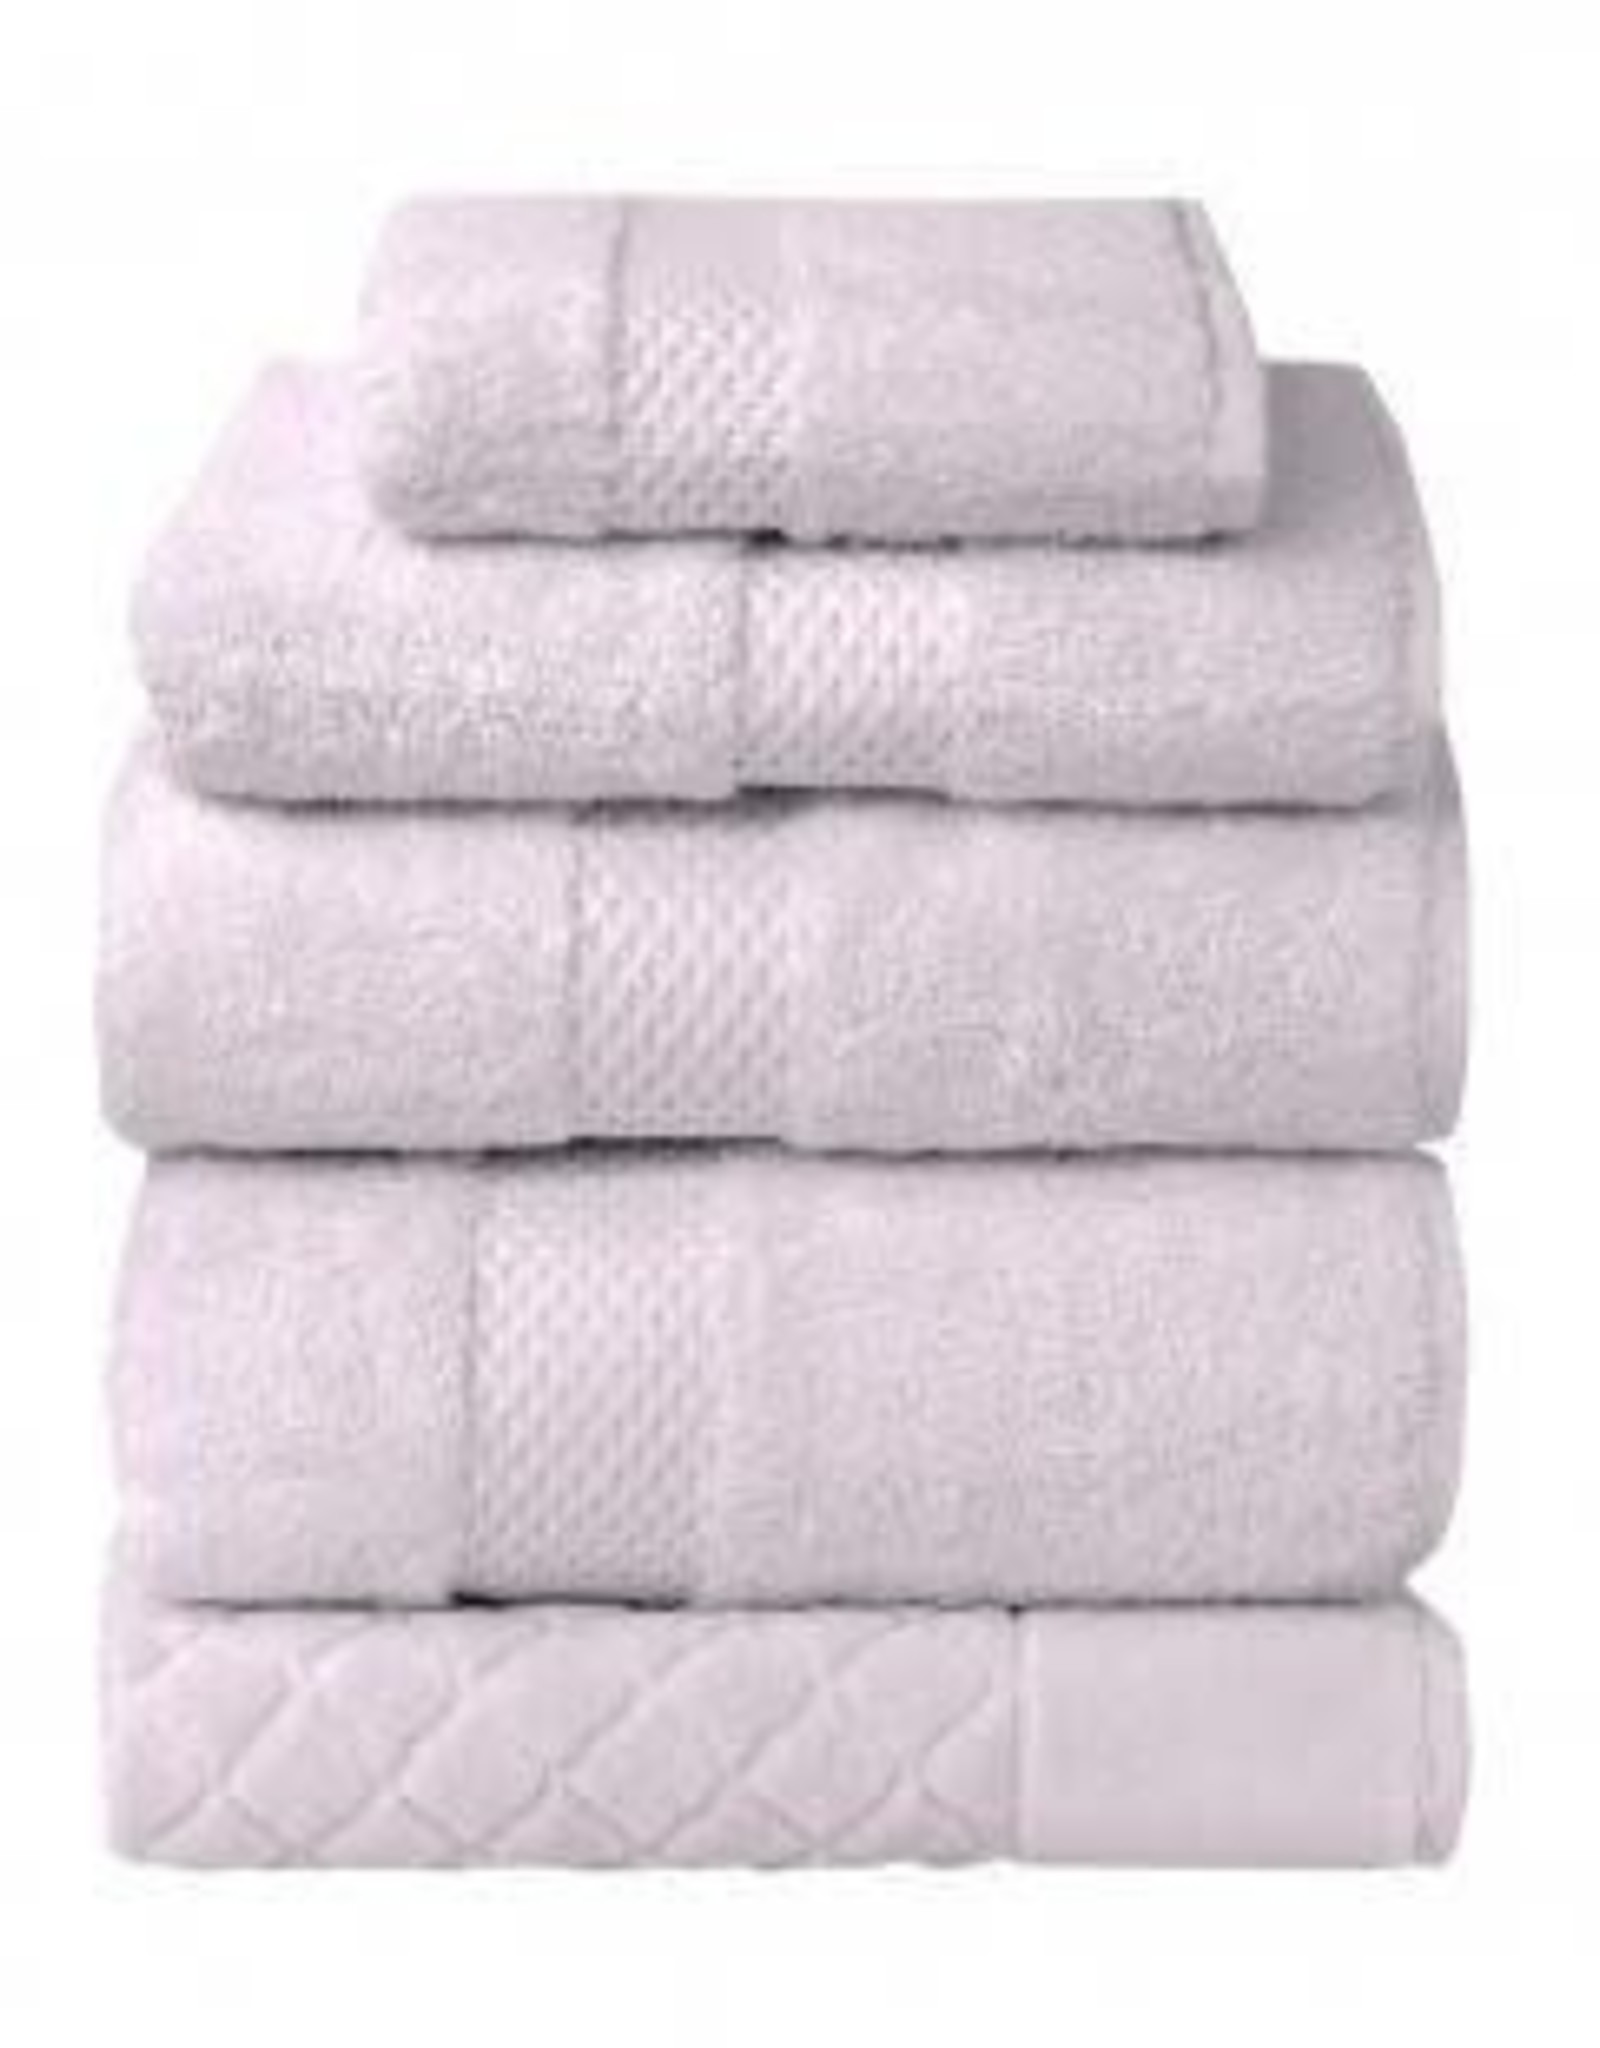 Yves Delorme Etoile Bath Towel Collection